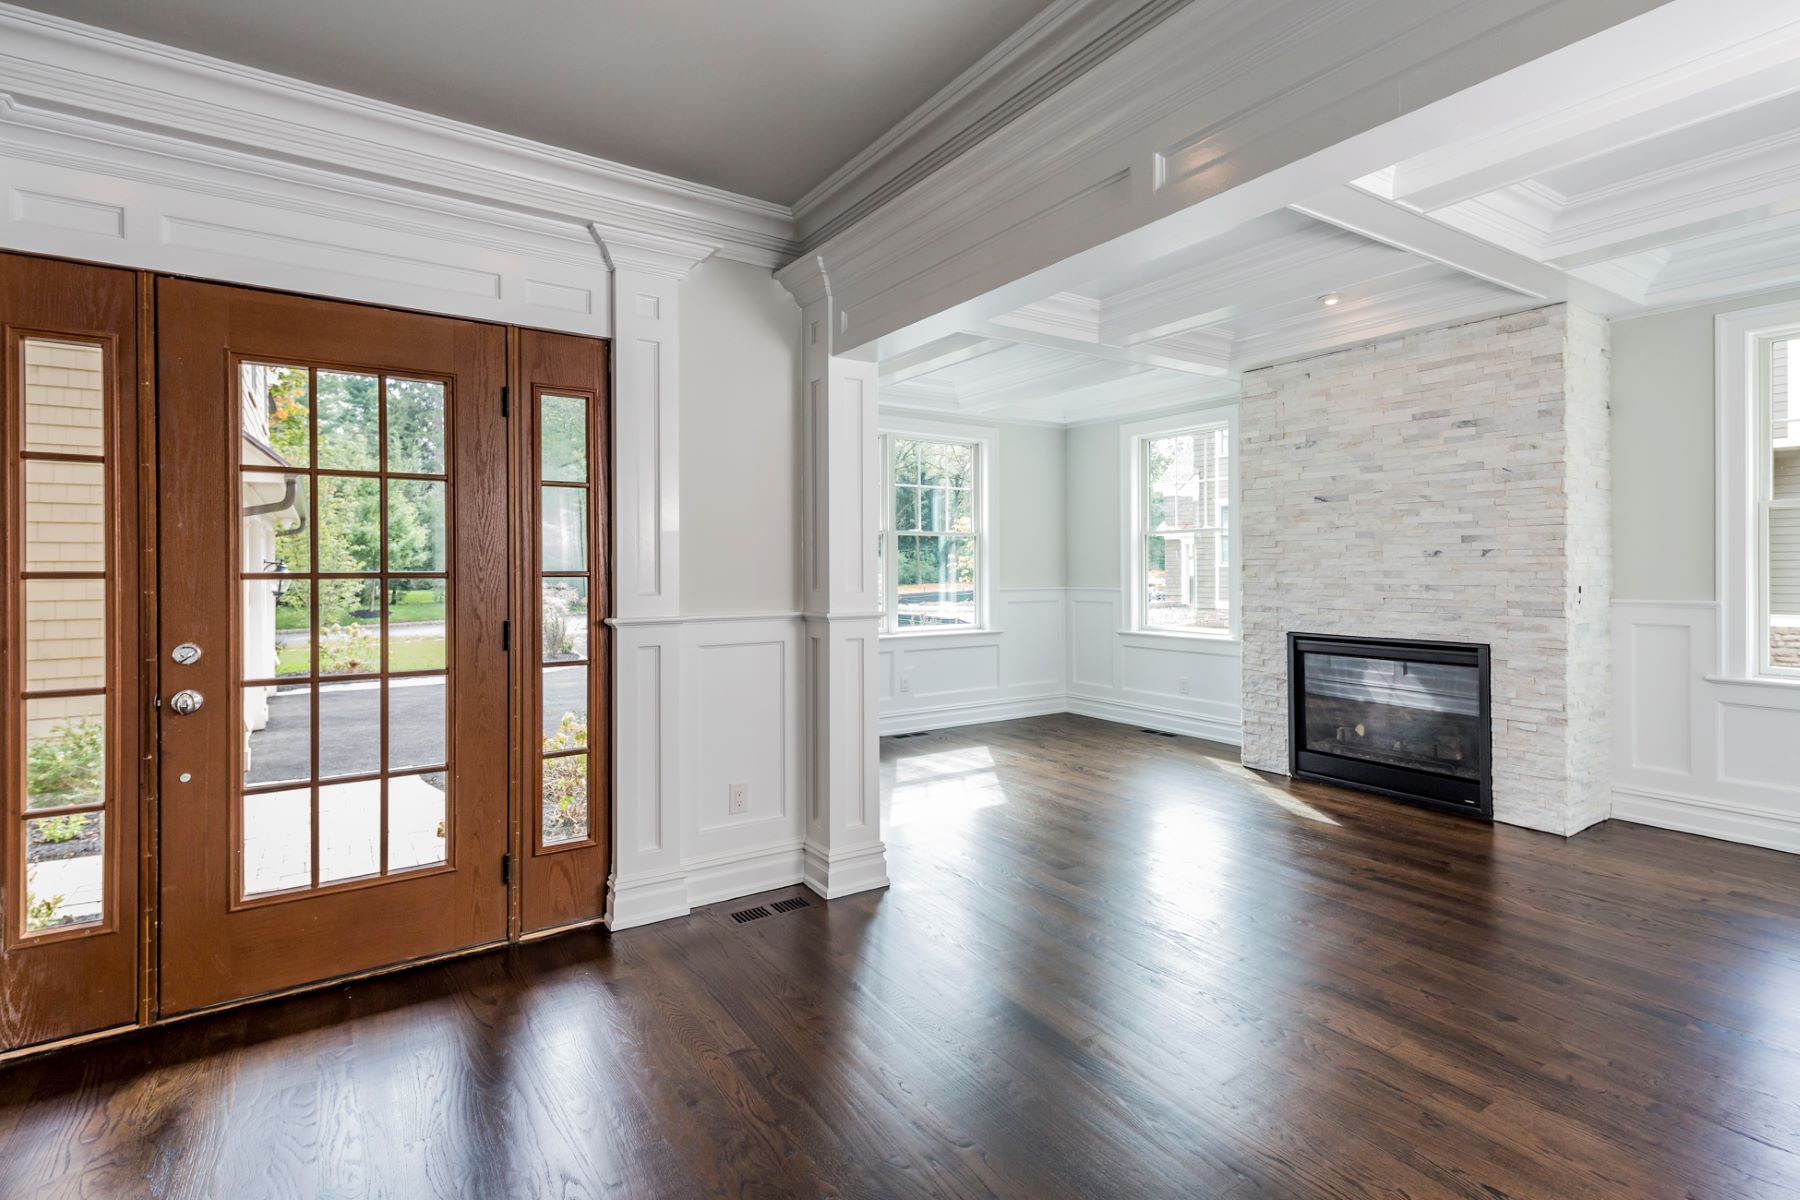 Additional photo for property listing at Exceptionally Crafted New Home in Riverside 536 Prospect Avenue, Princeton, New Jersey 08540 United States